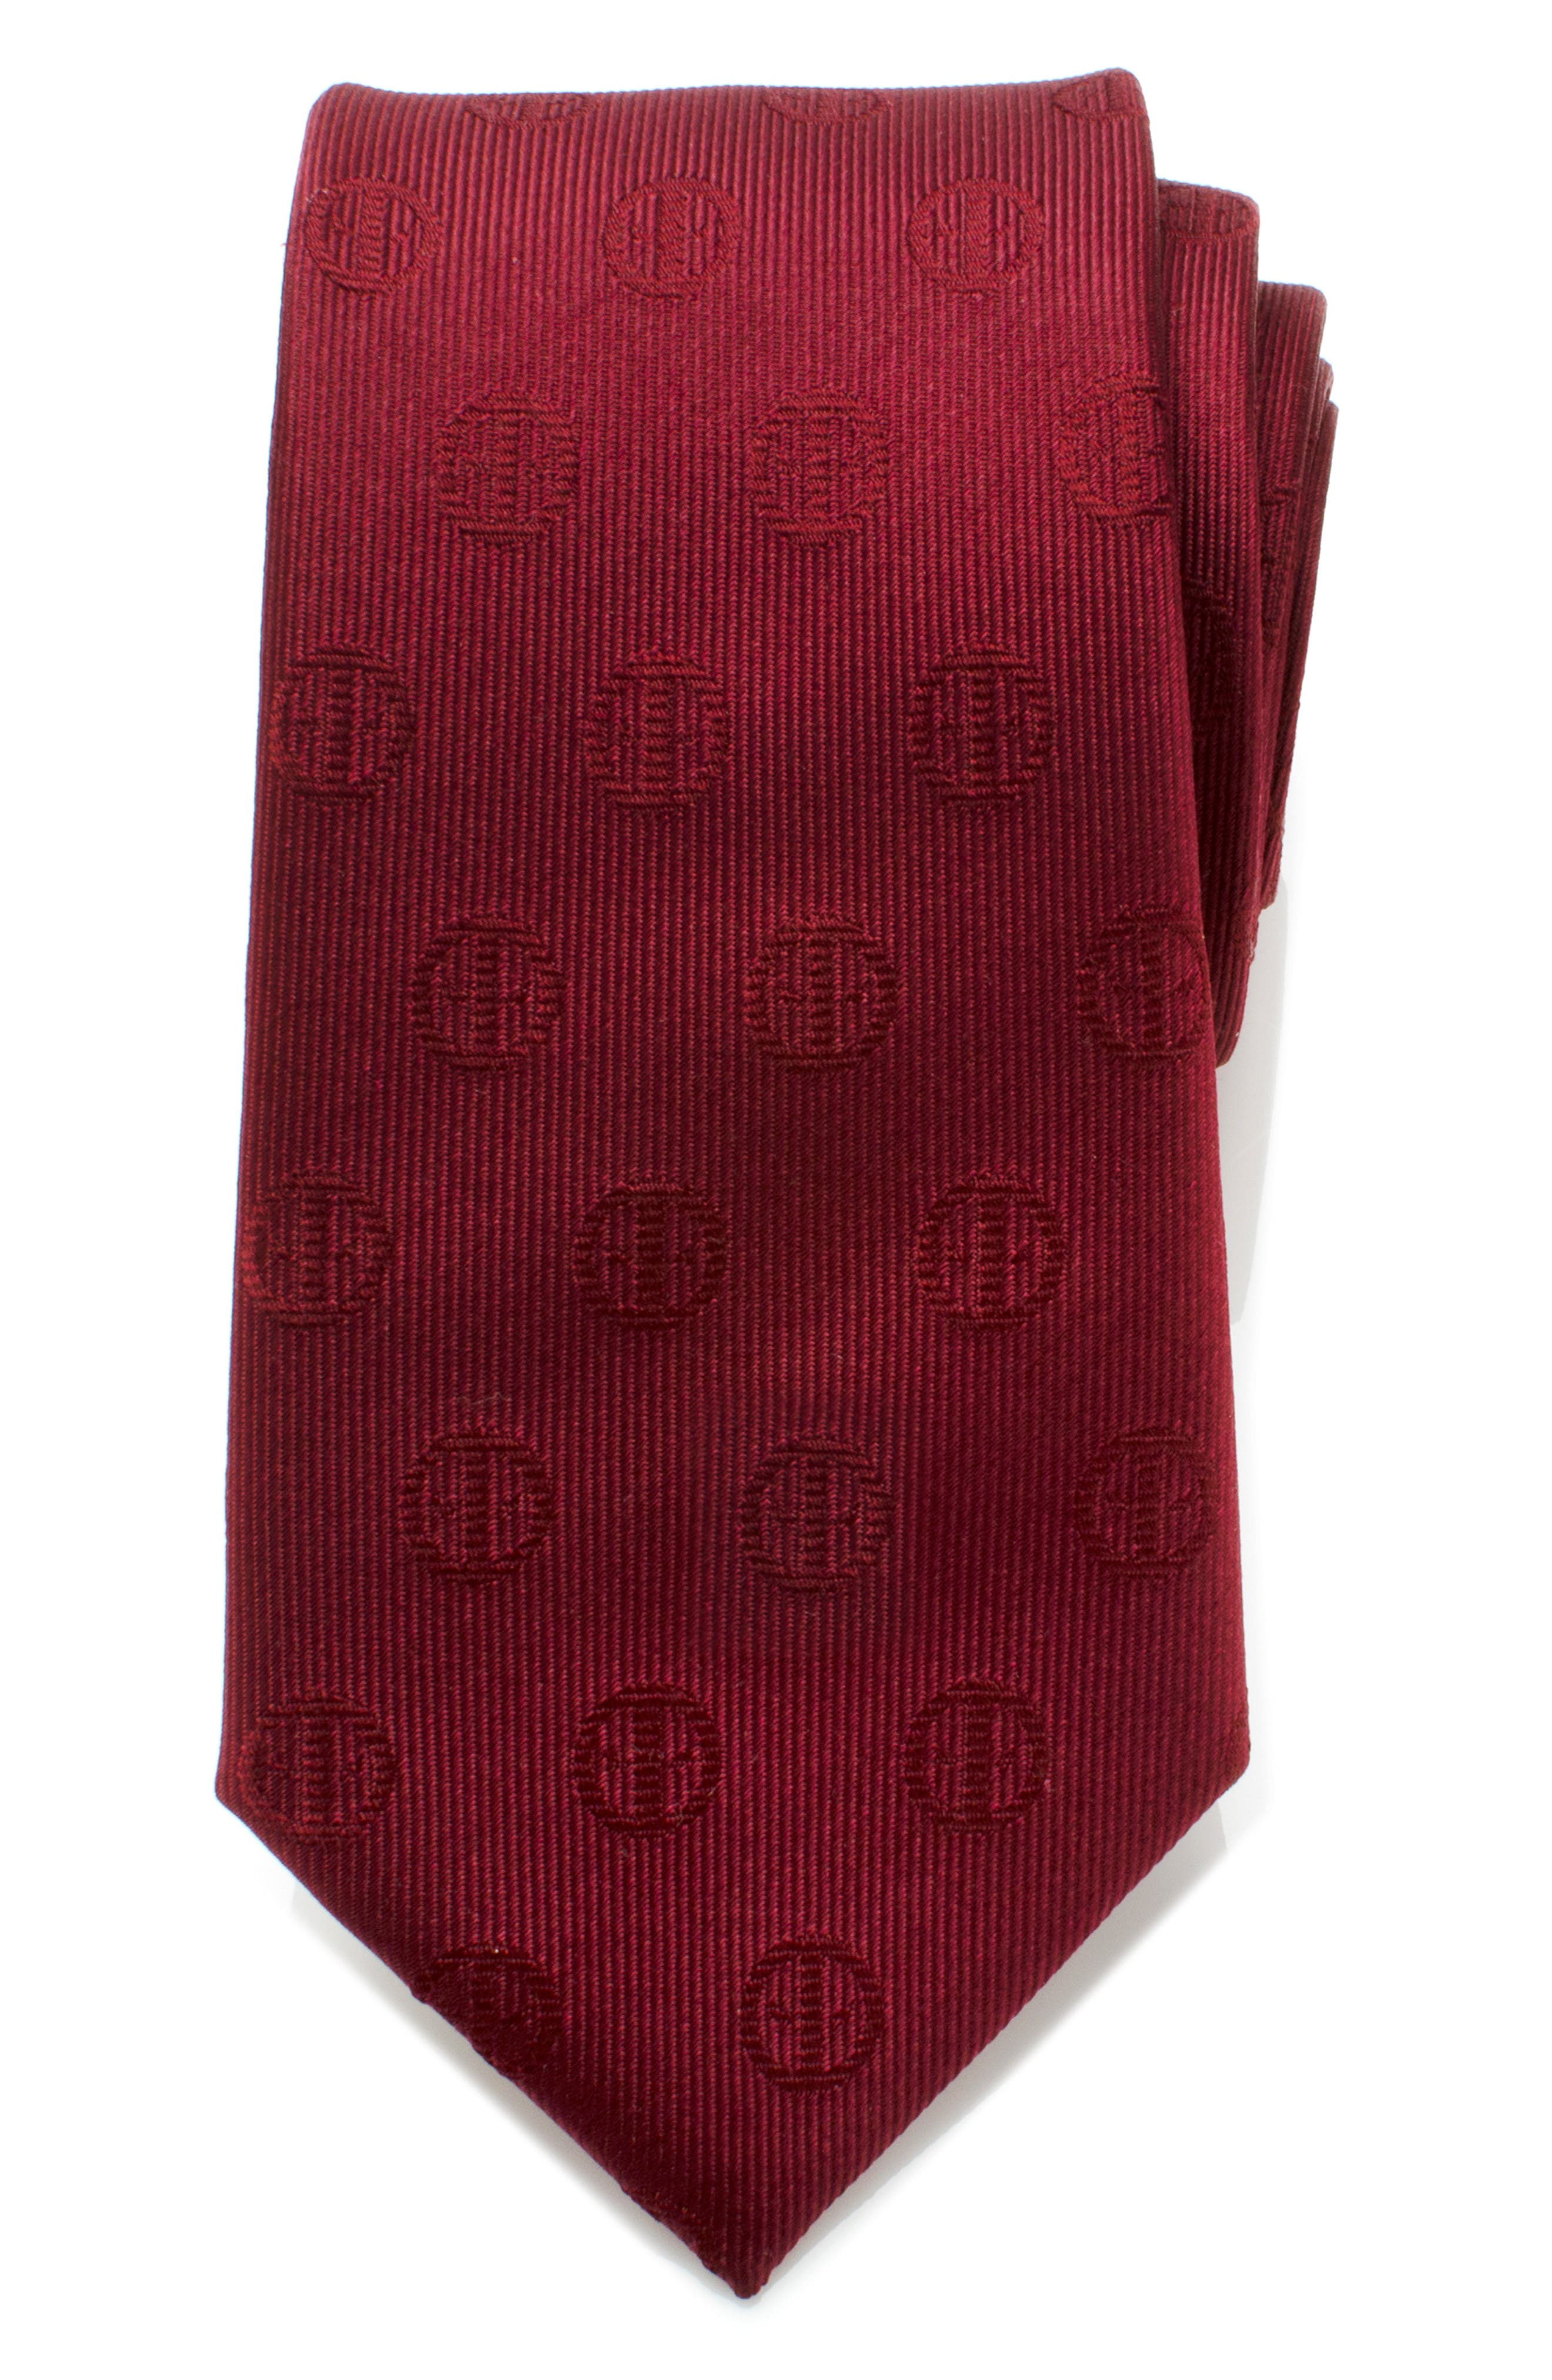 Show off your Deadpool fandom with this eye-catching tie cut from pure silk. Style Name: Cufflinks, Inc. Deadpool Silk Tie. Style Number: 5707720. Available in stores.